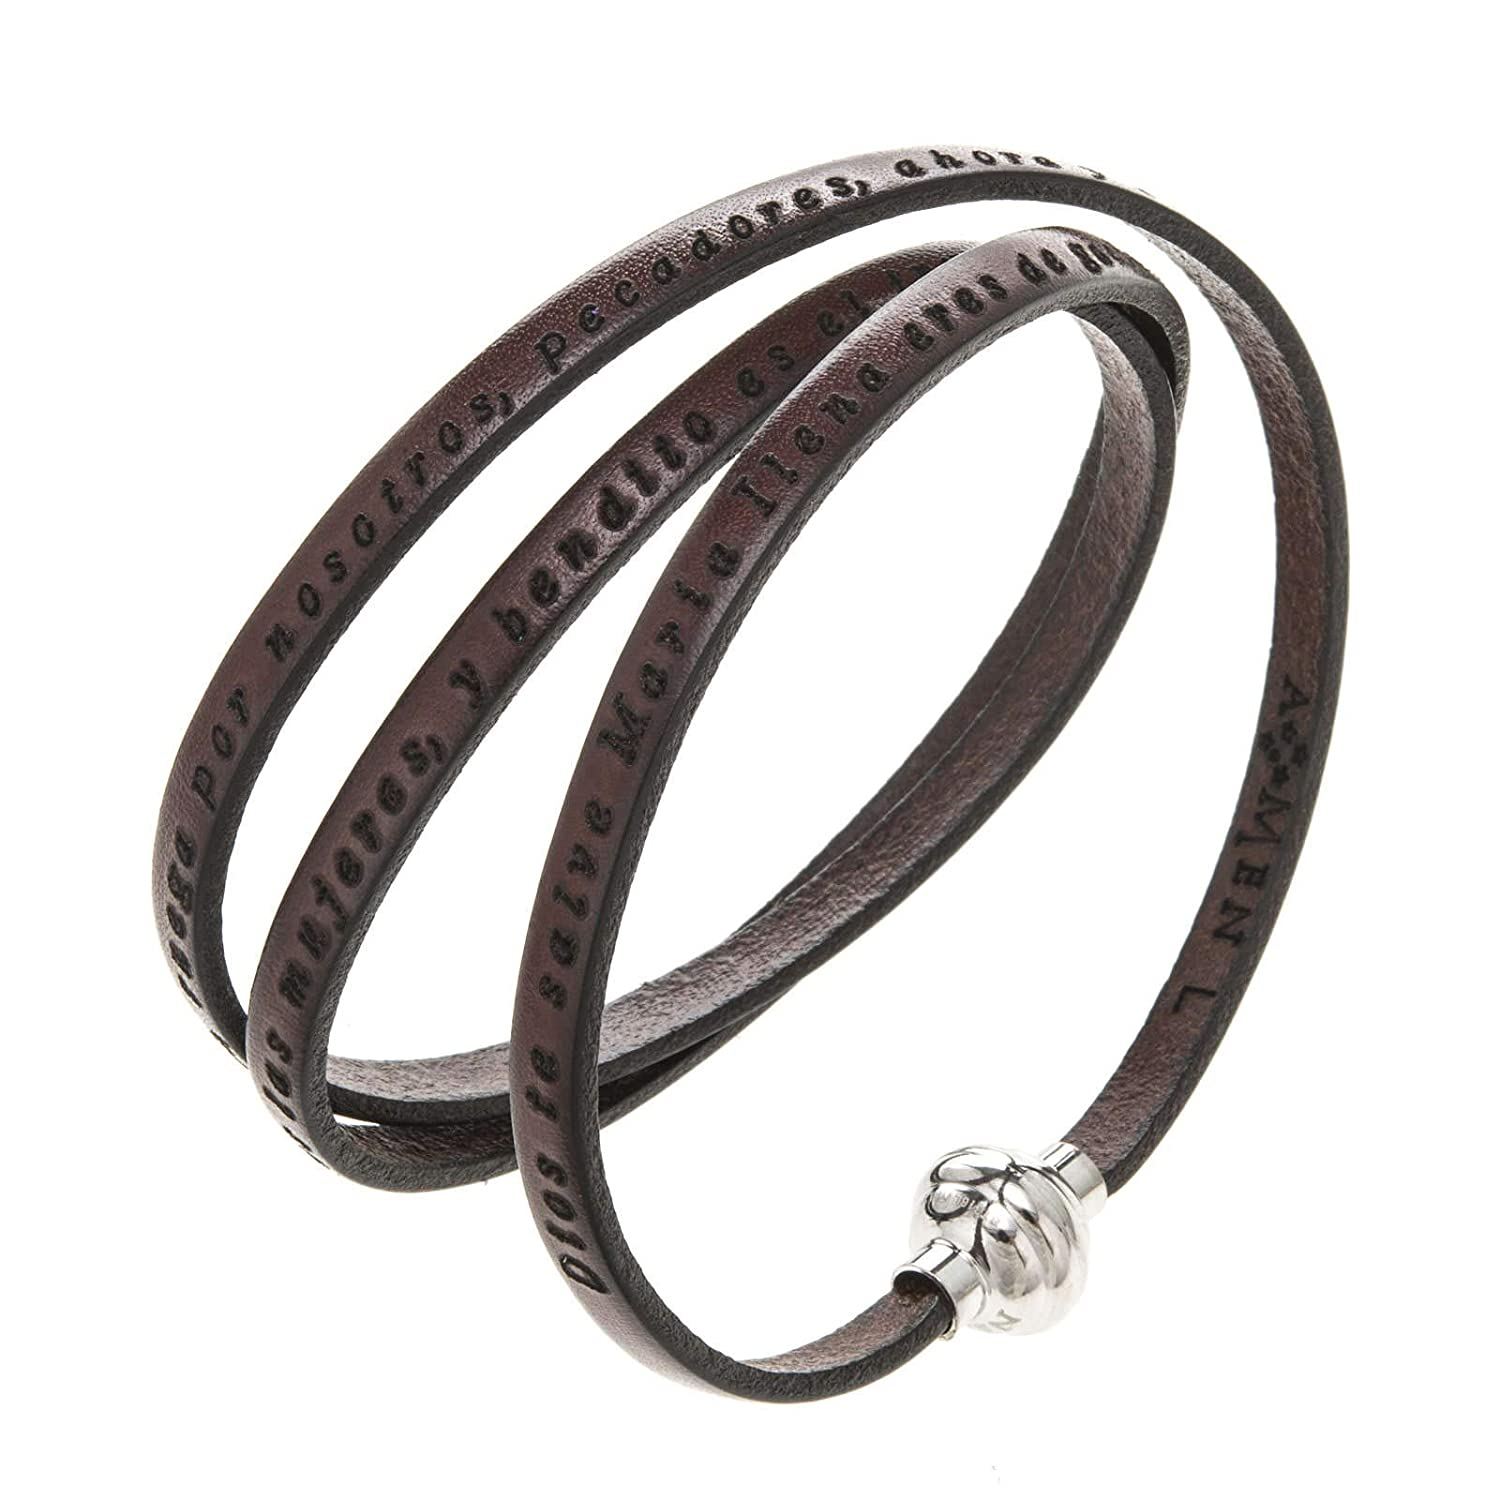 Amazon.com: Amen Bracelet in Brown Leather Hail Mary SPA, 54 cm (21.28 inc.): Home & Kitchen